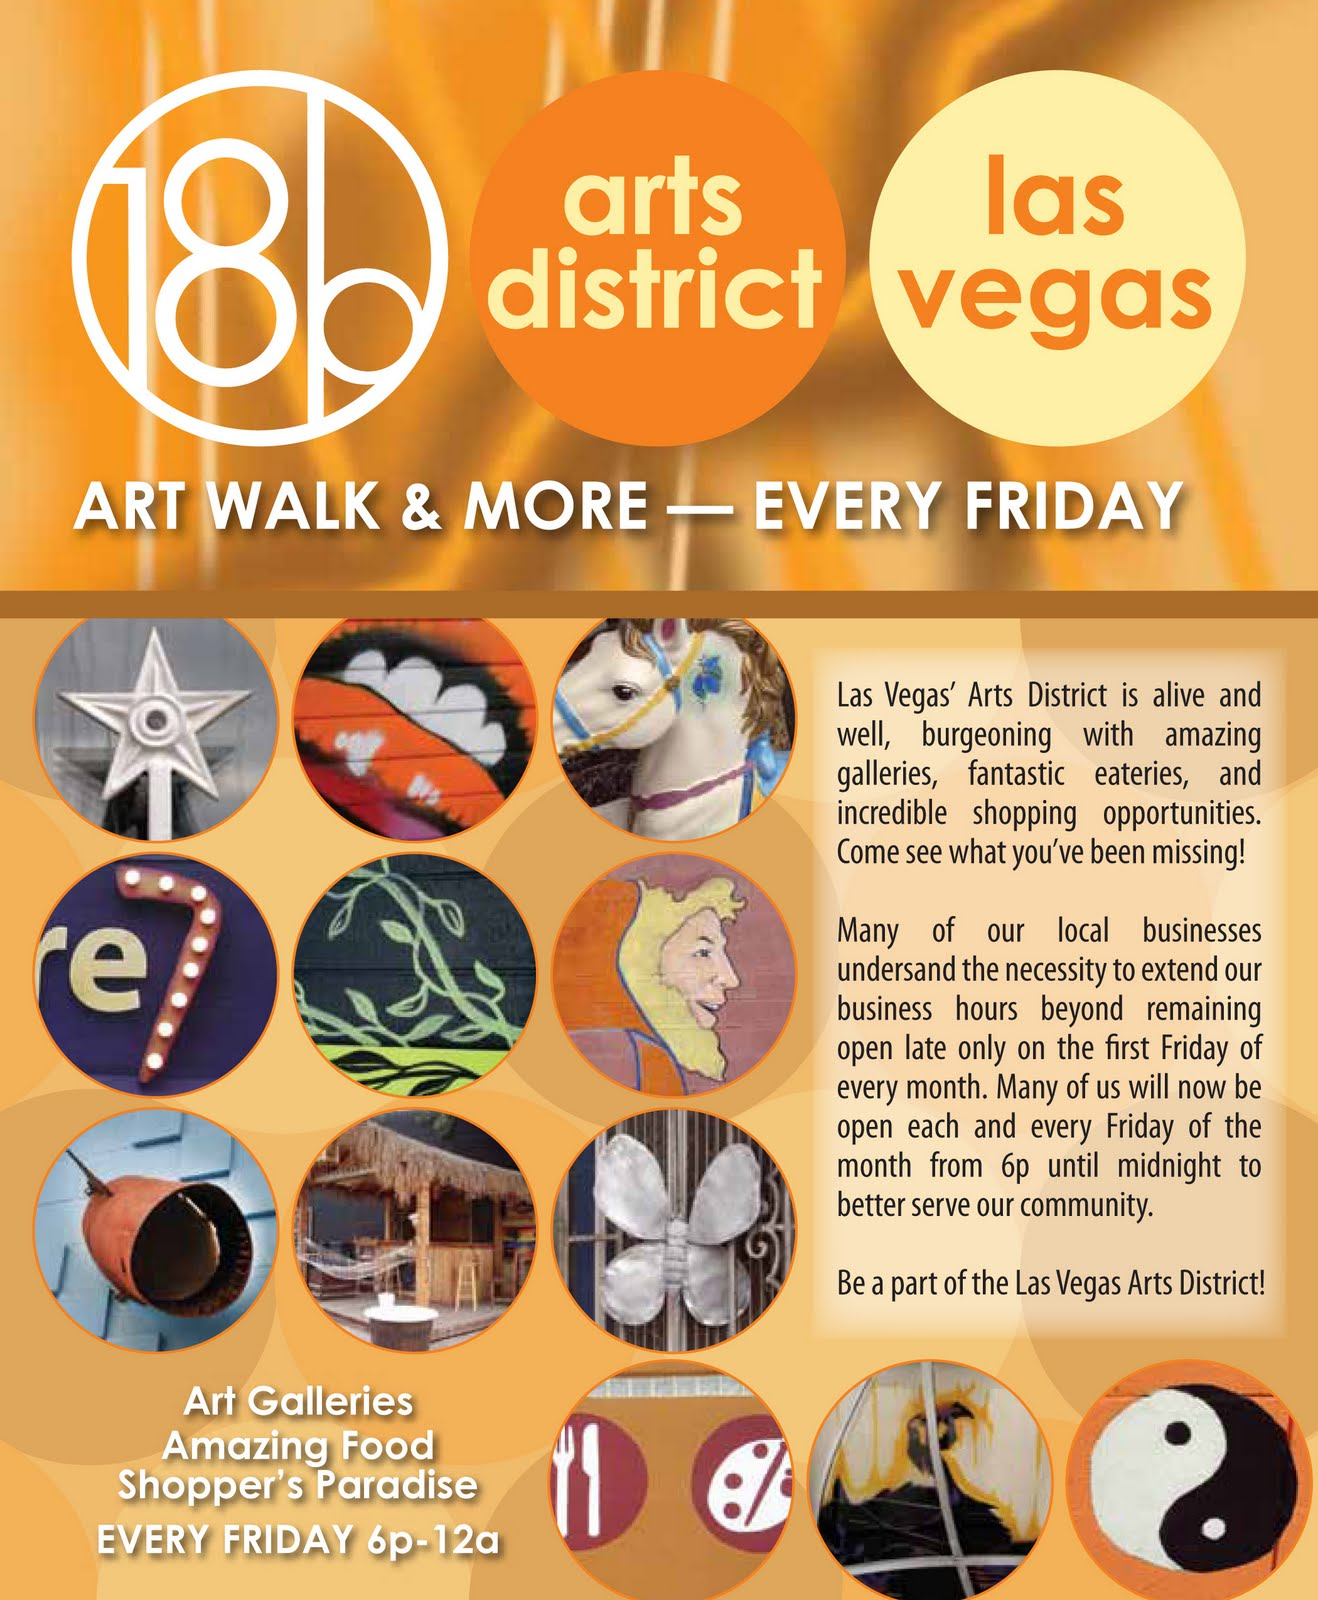 First Friday Las Vegas Map.Las Vegas Arts And Culture New Arts District Map Ready Just In Time